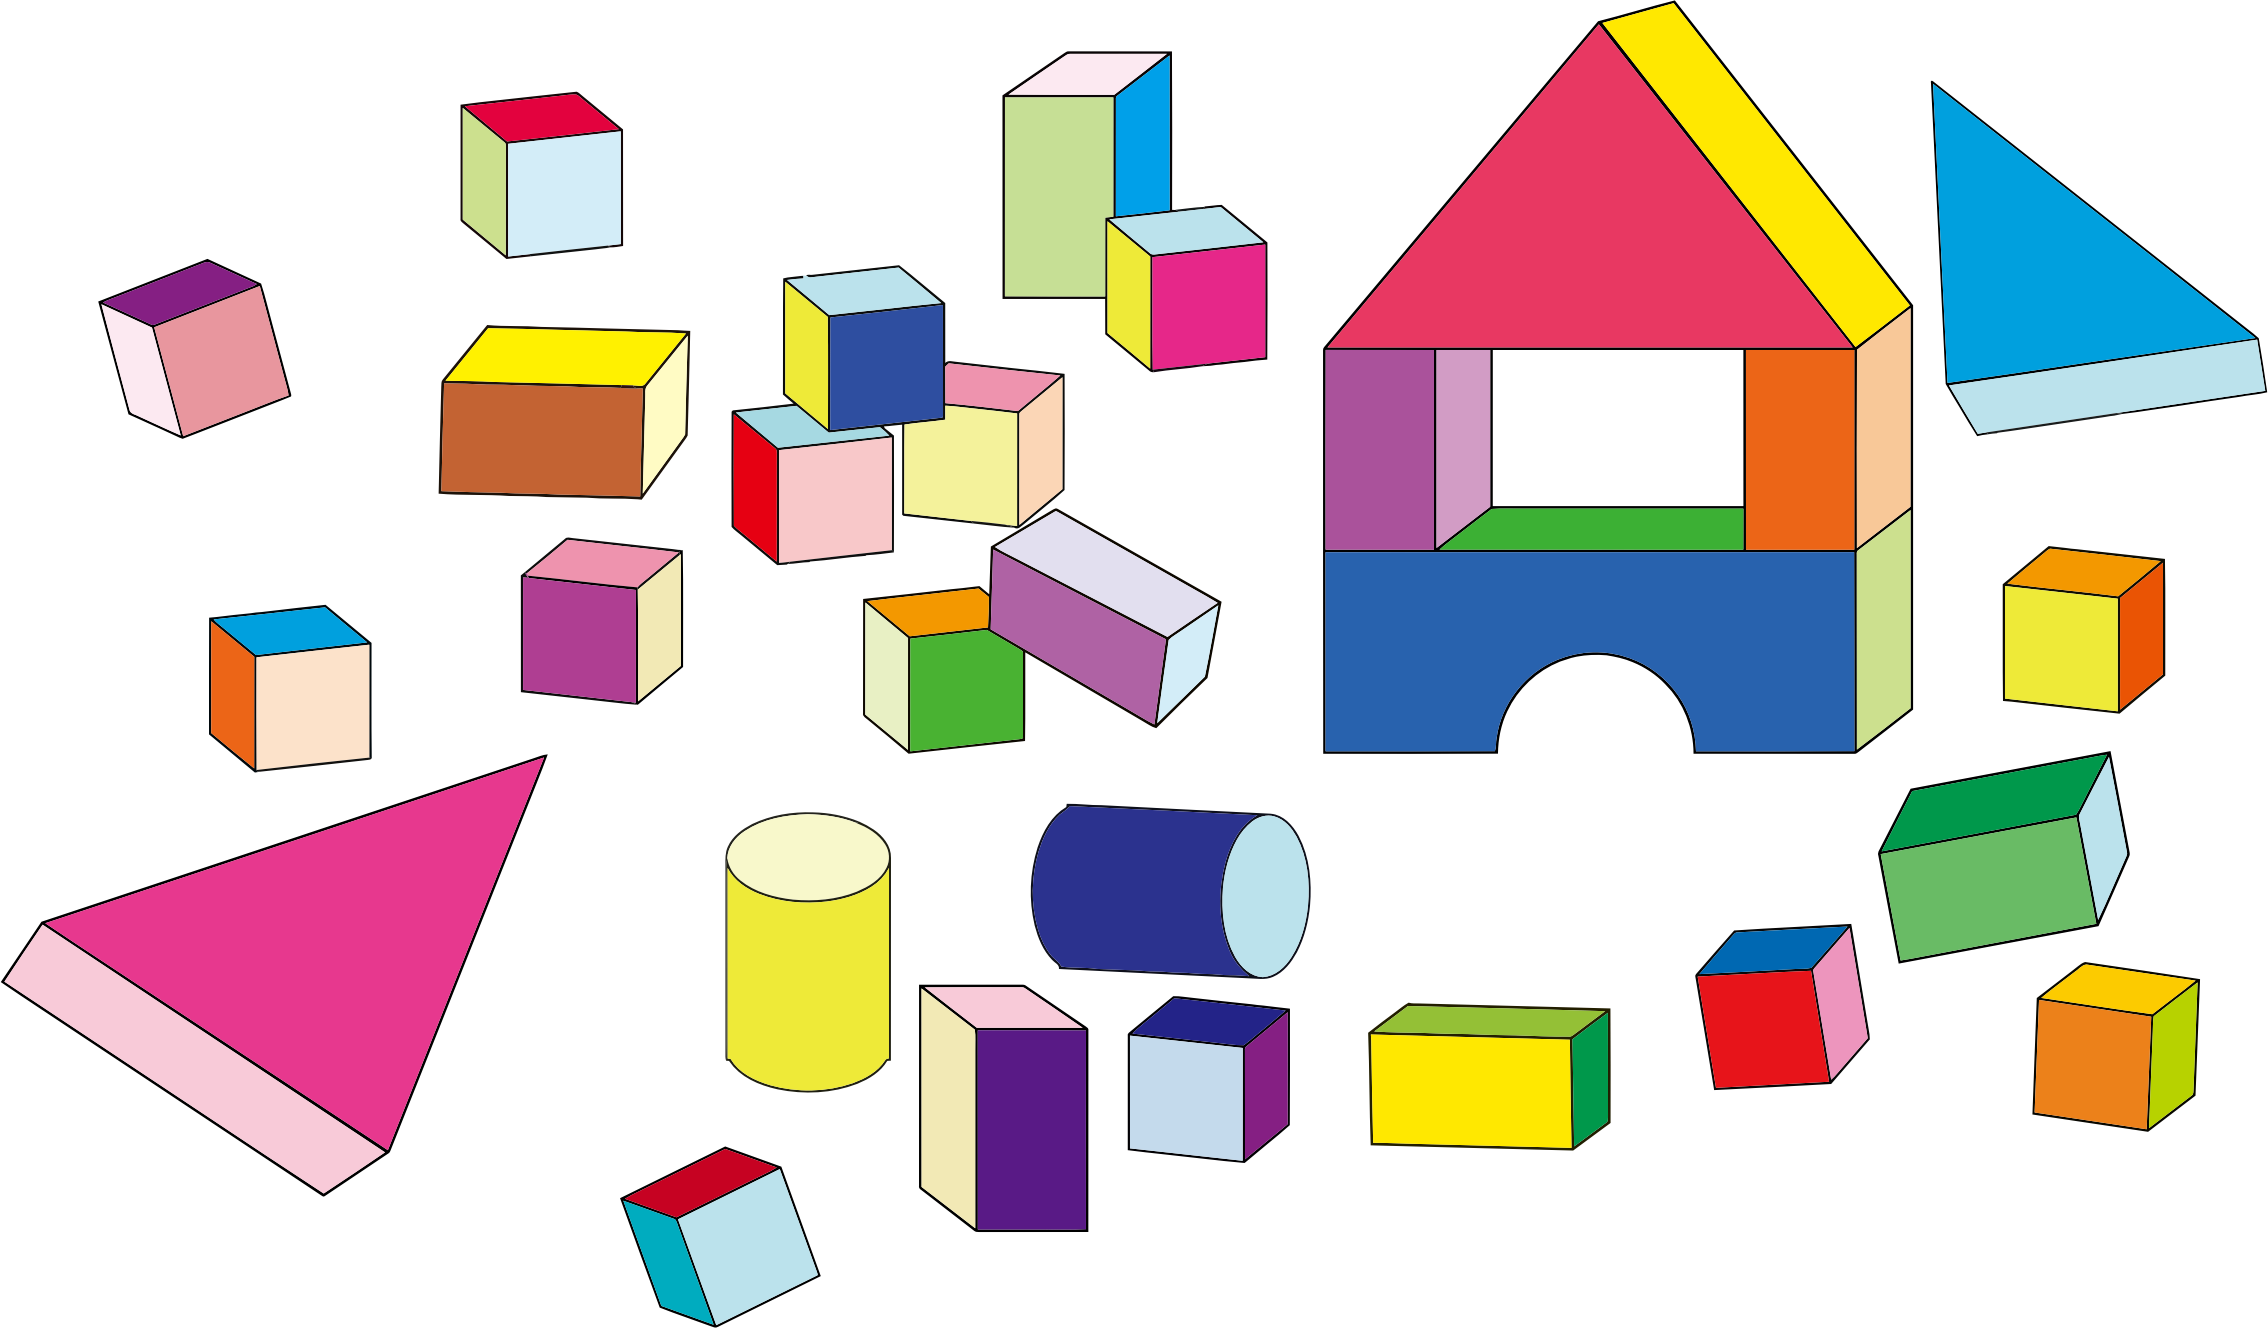 Building Block Toys by GDJ